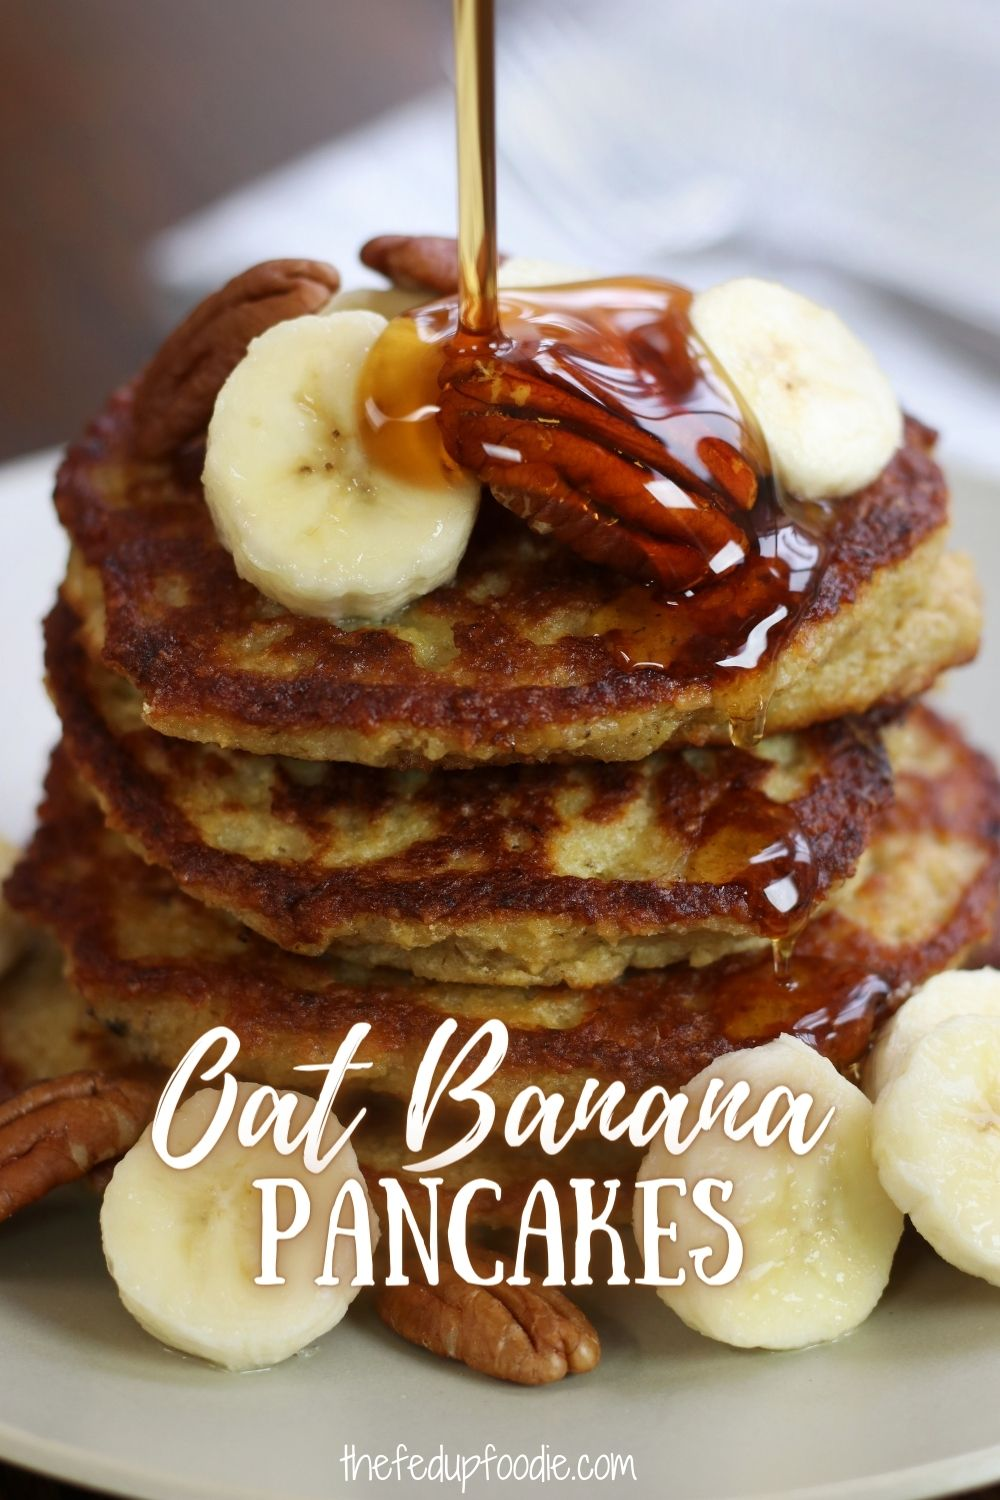 These Oat Banana Pancakes are not only healthy, they are also fluffy, tender and absolutely delicious. Easy to make and perfect for when you have over ripe bananas. Dairy free and vegan options included. #OatBananaPancakes #OatmealRecipesBreakfast #OatmealBananaPancakesHealthy #BananaOatmealPancakes #HealthyBananaOatPancakes